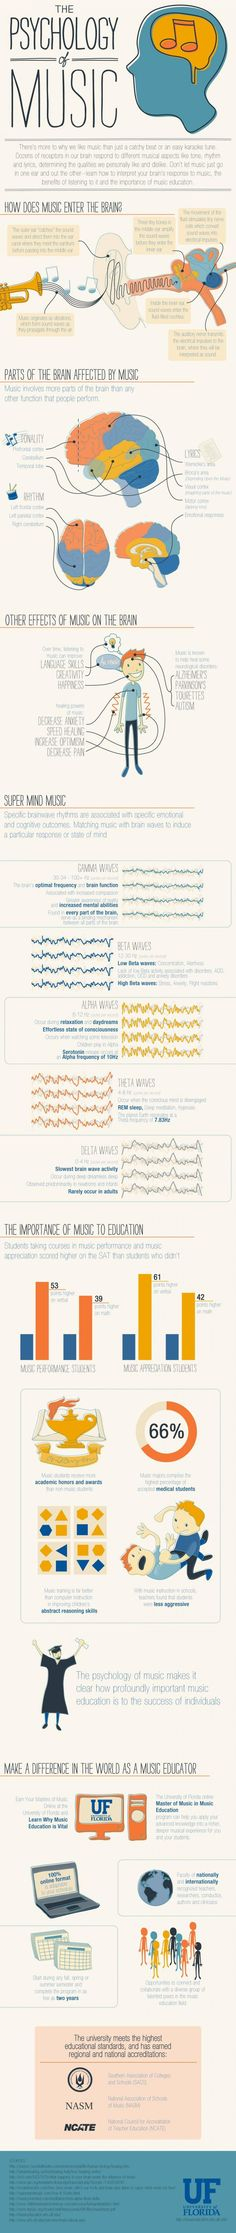 The Psychology of Music  Infographic